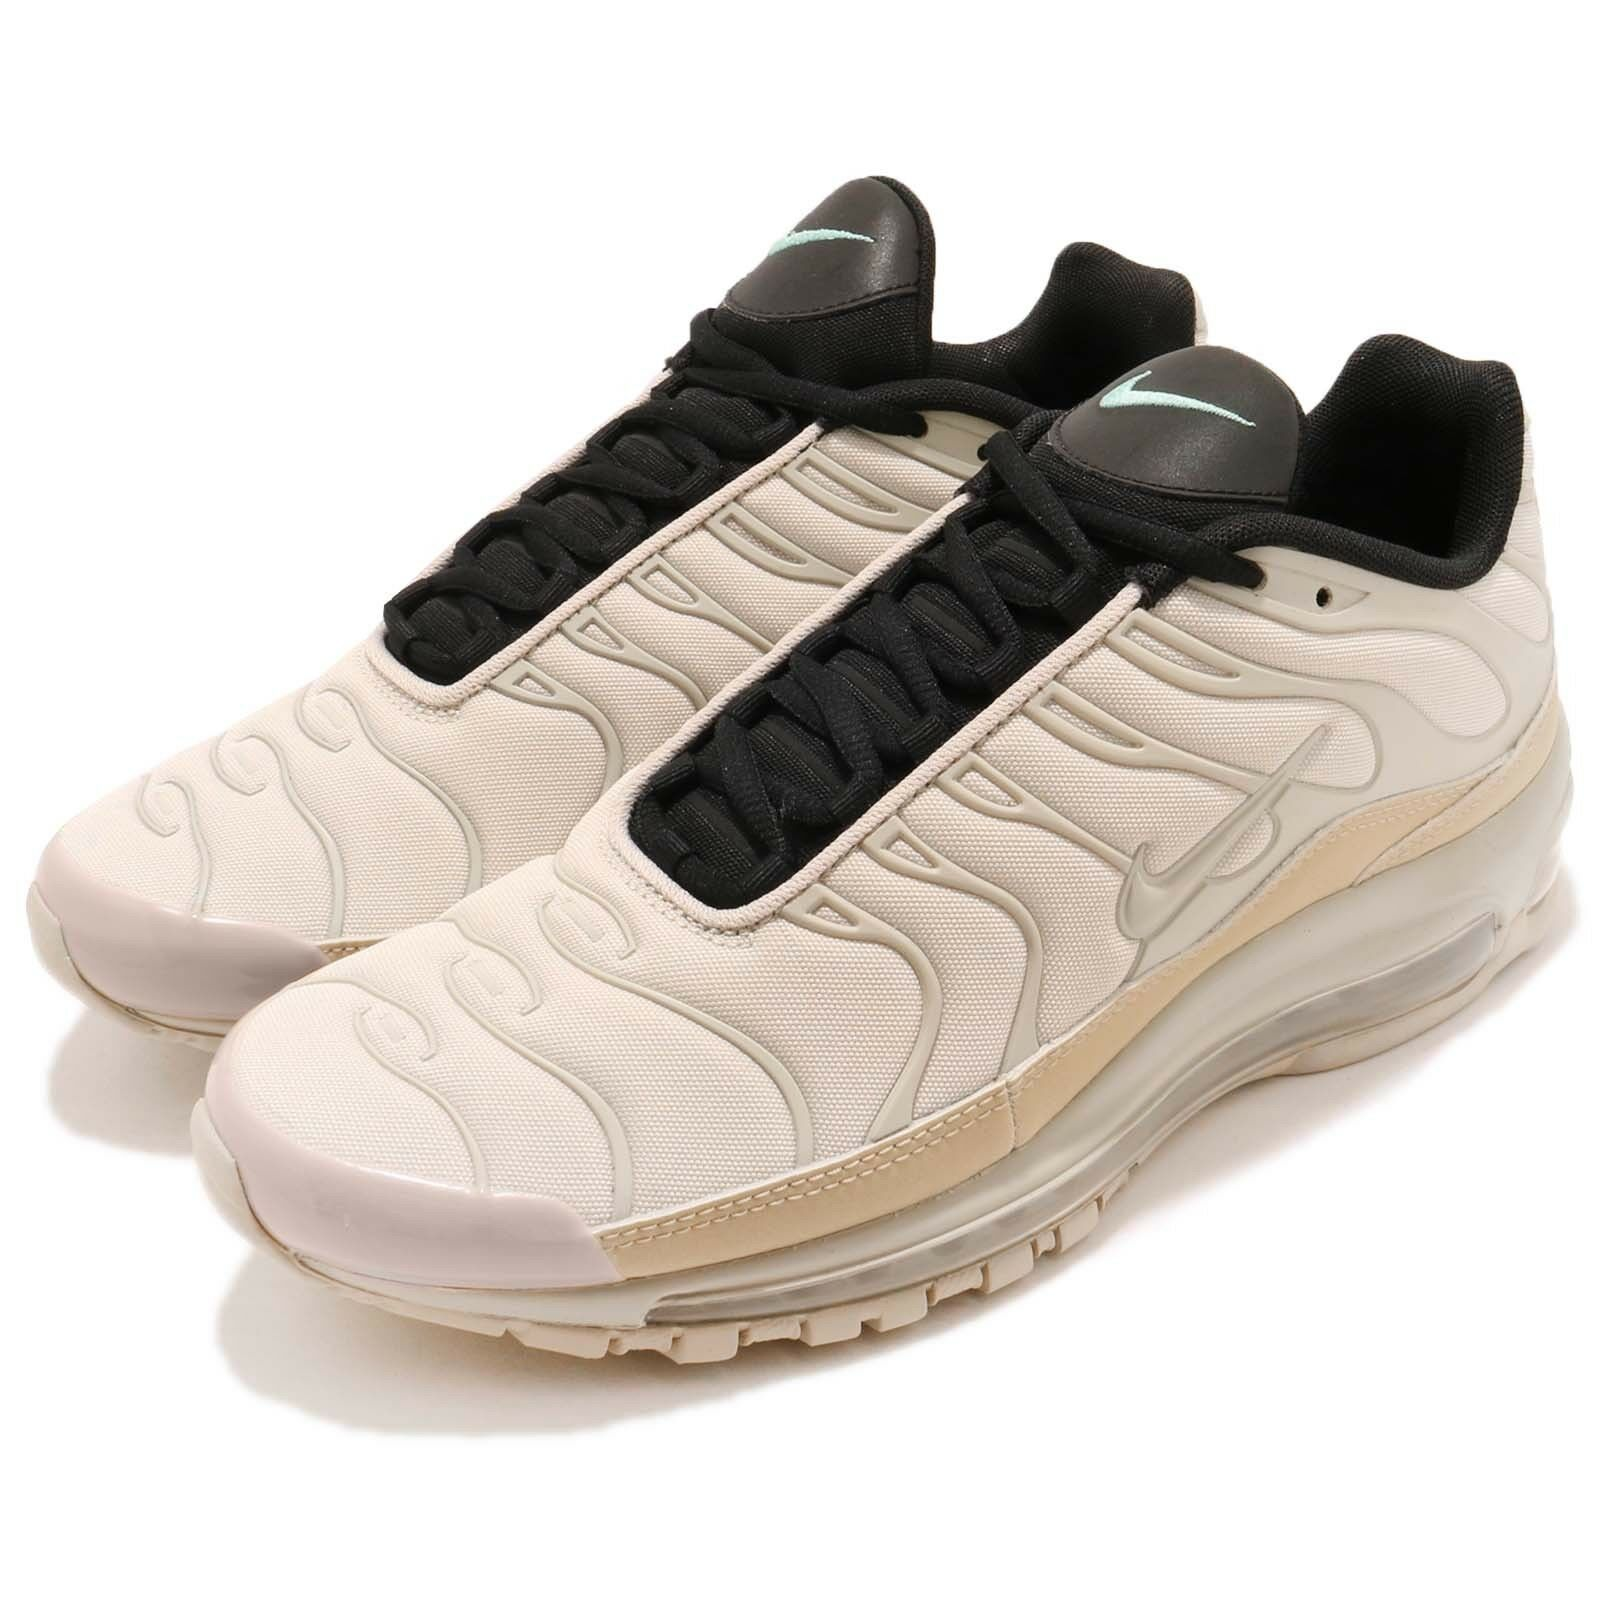 Nike Air Max 97 Plus Orewood Brown Reflective Mnes fonctionnement chaussures AH8144-101